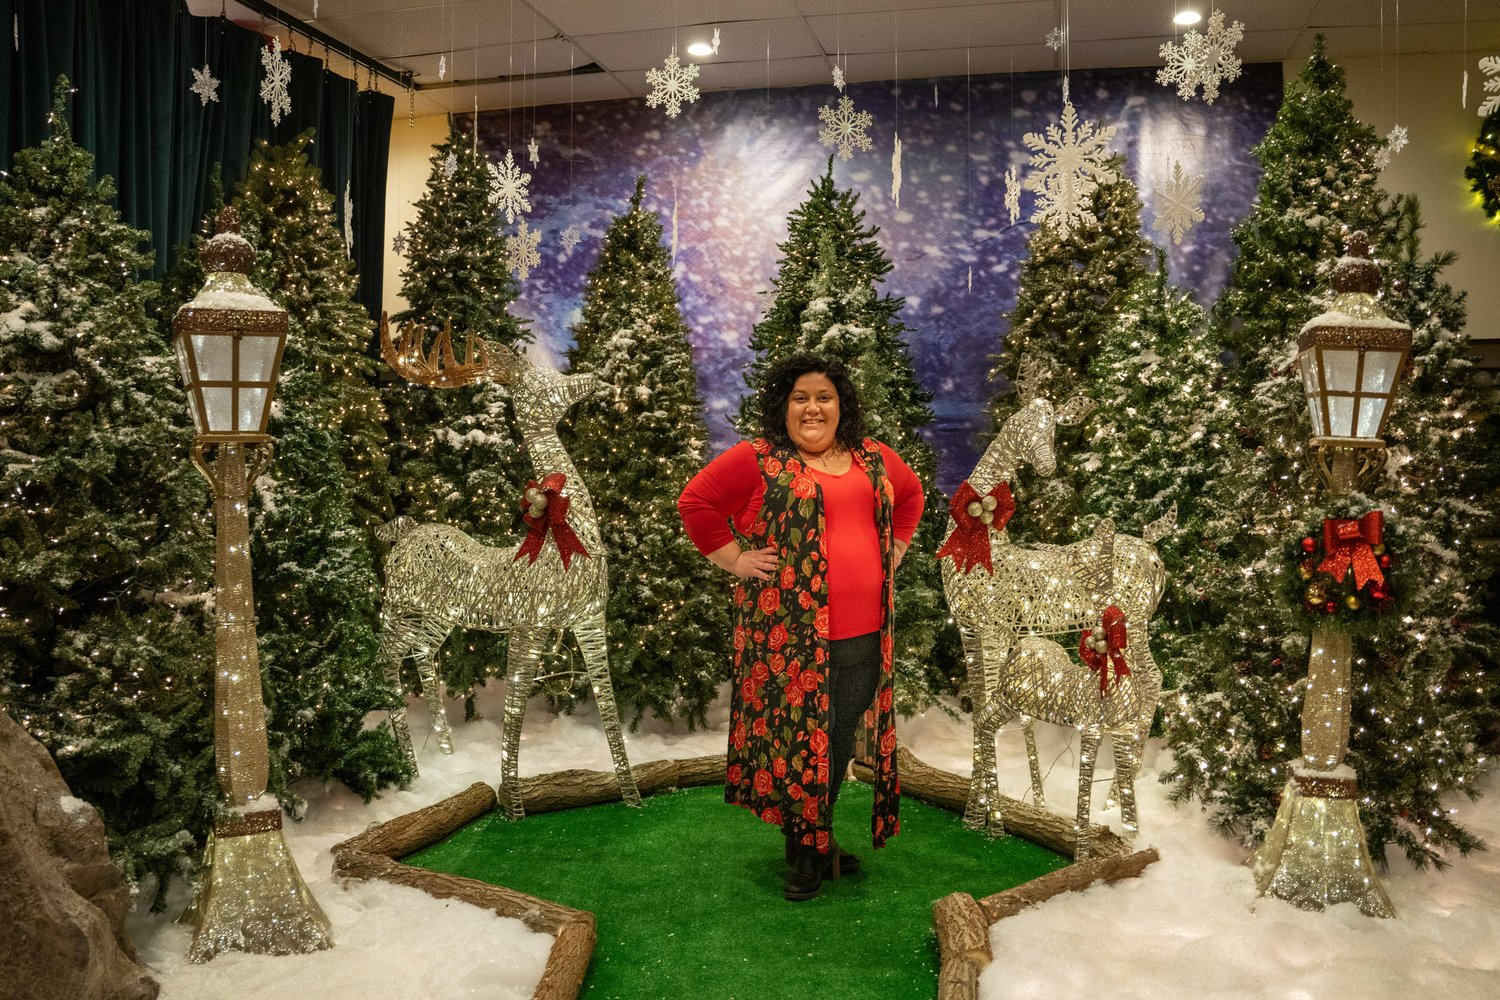 CMPAC executive director Alyse Arpino stands in the middle of a perfect Instagram shot within the Enchanted Reindeer Forest.